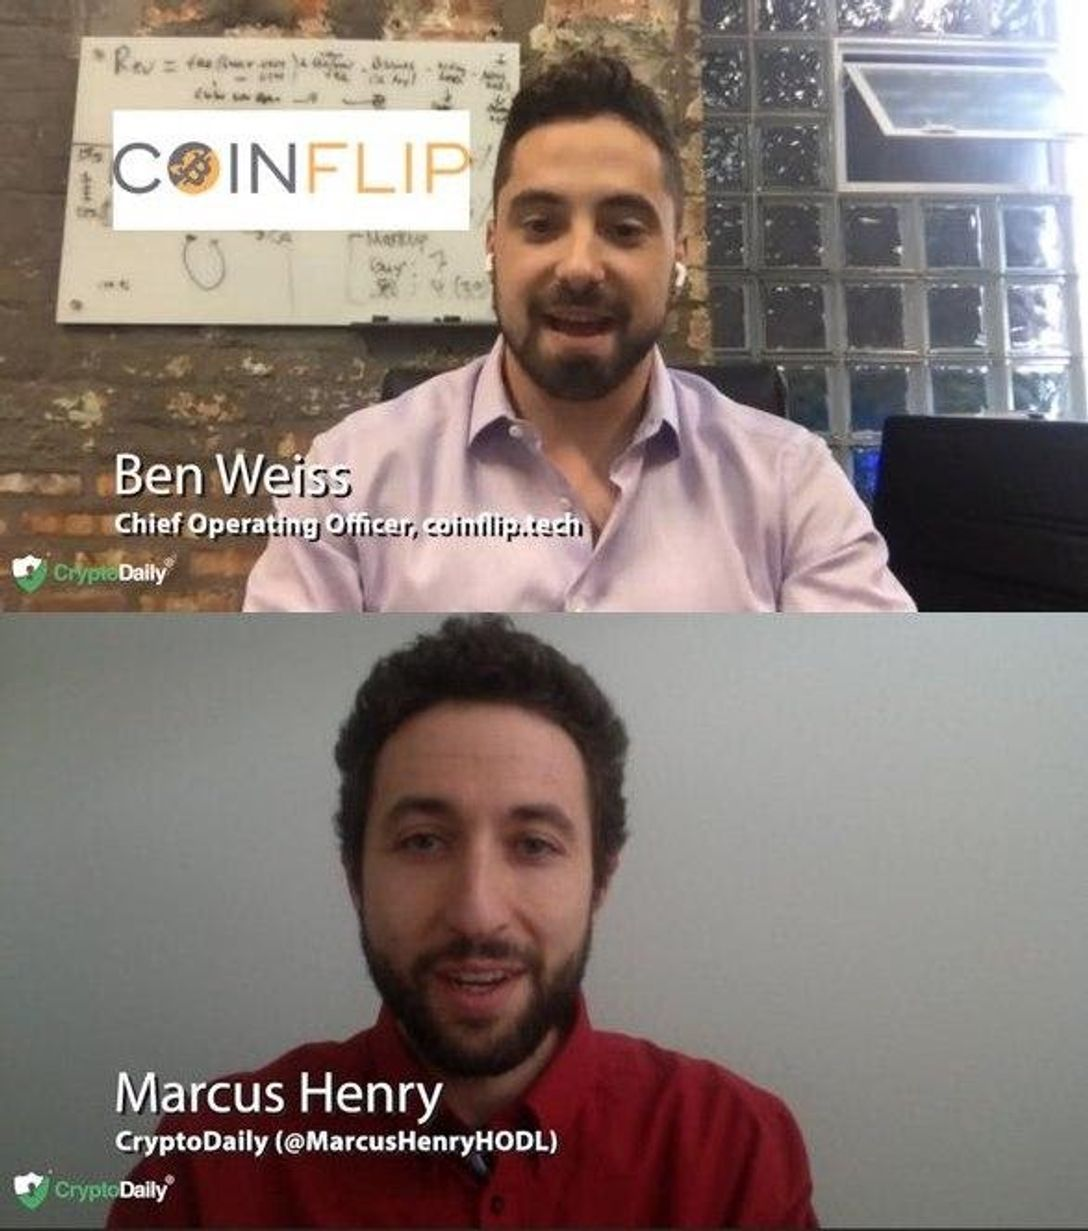 Marcus Henry Interviews CoinFlip COO Ben Weiss On Politics In The Workplace, The 2020 US Election, Crypto ATM Machines And More...